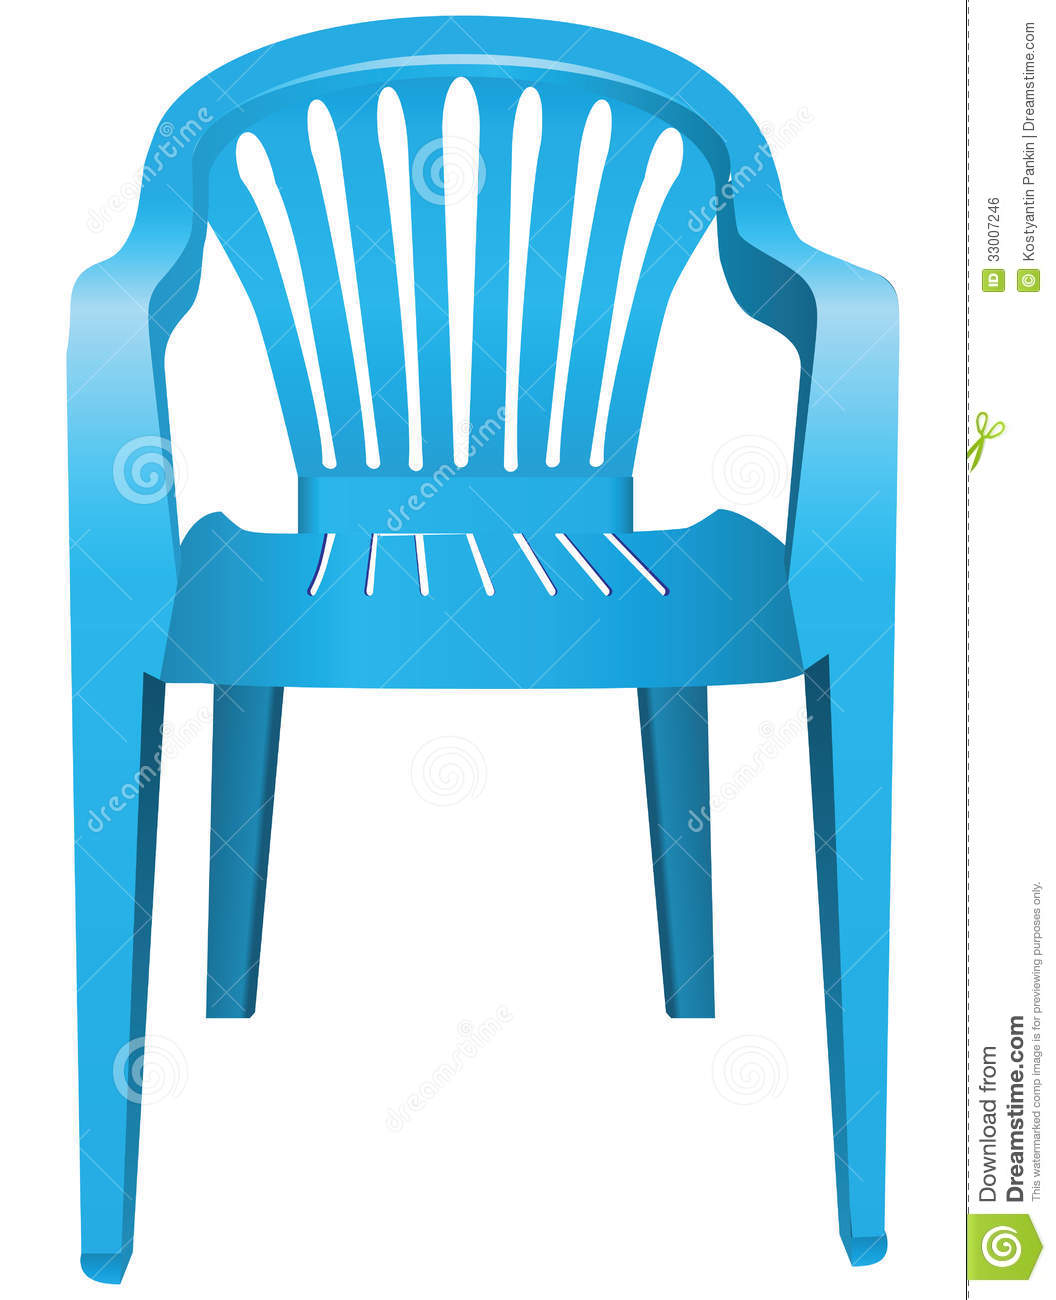 Plastic Chair Royalty Free Stock Image - Image: 33007246